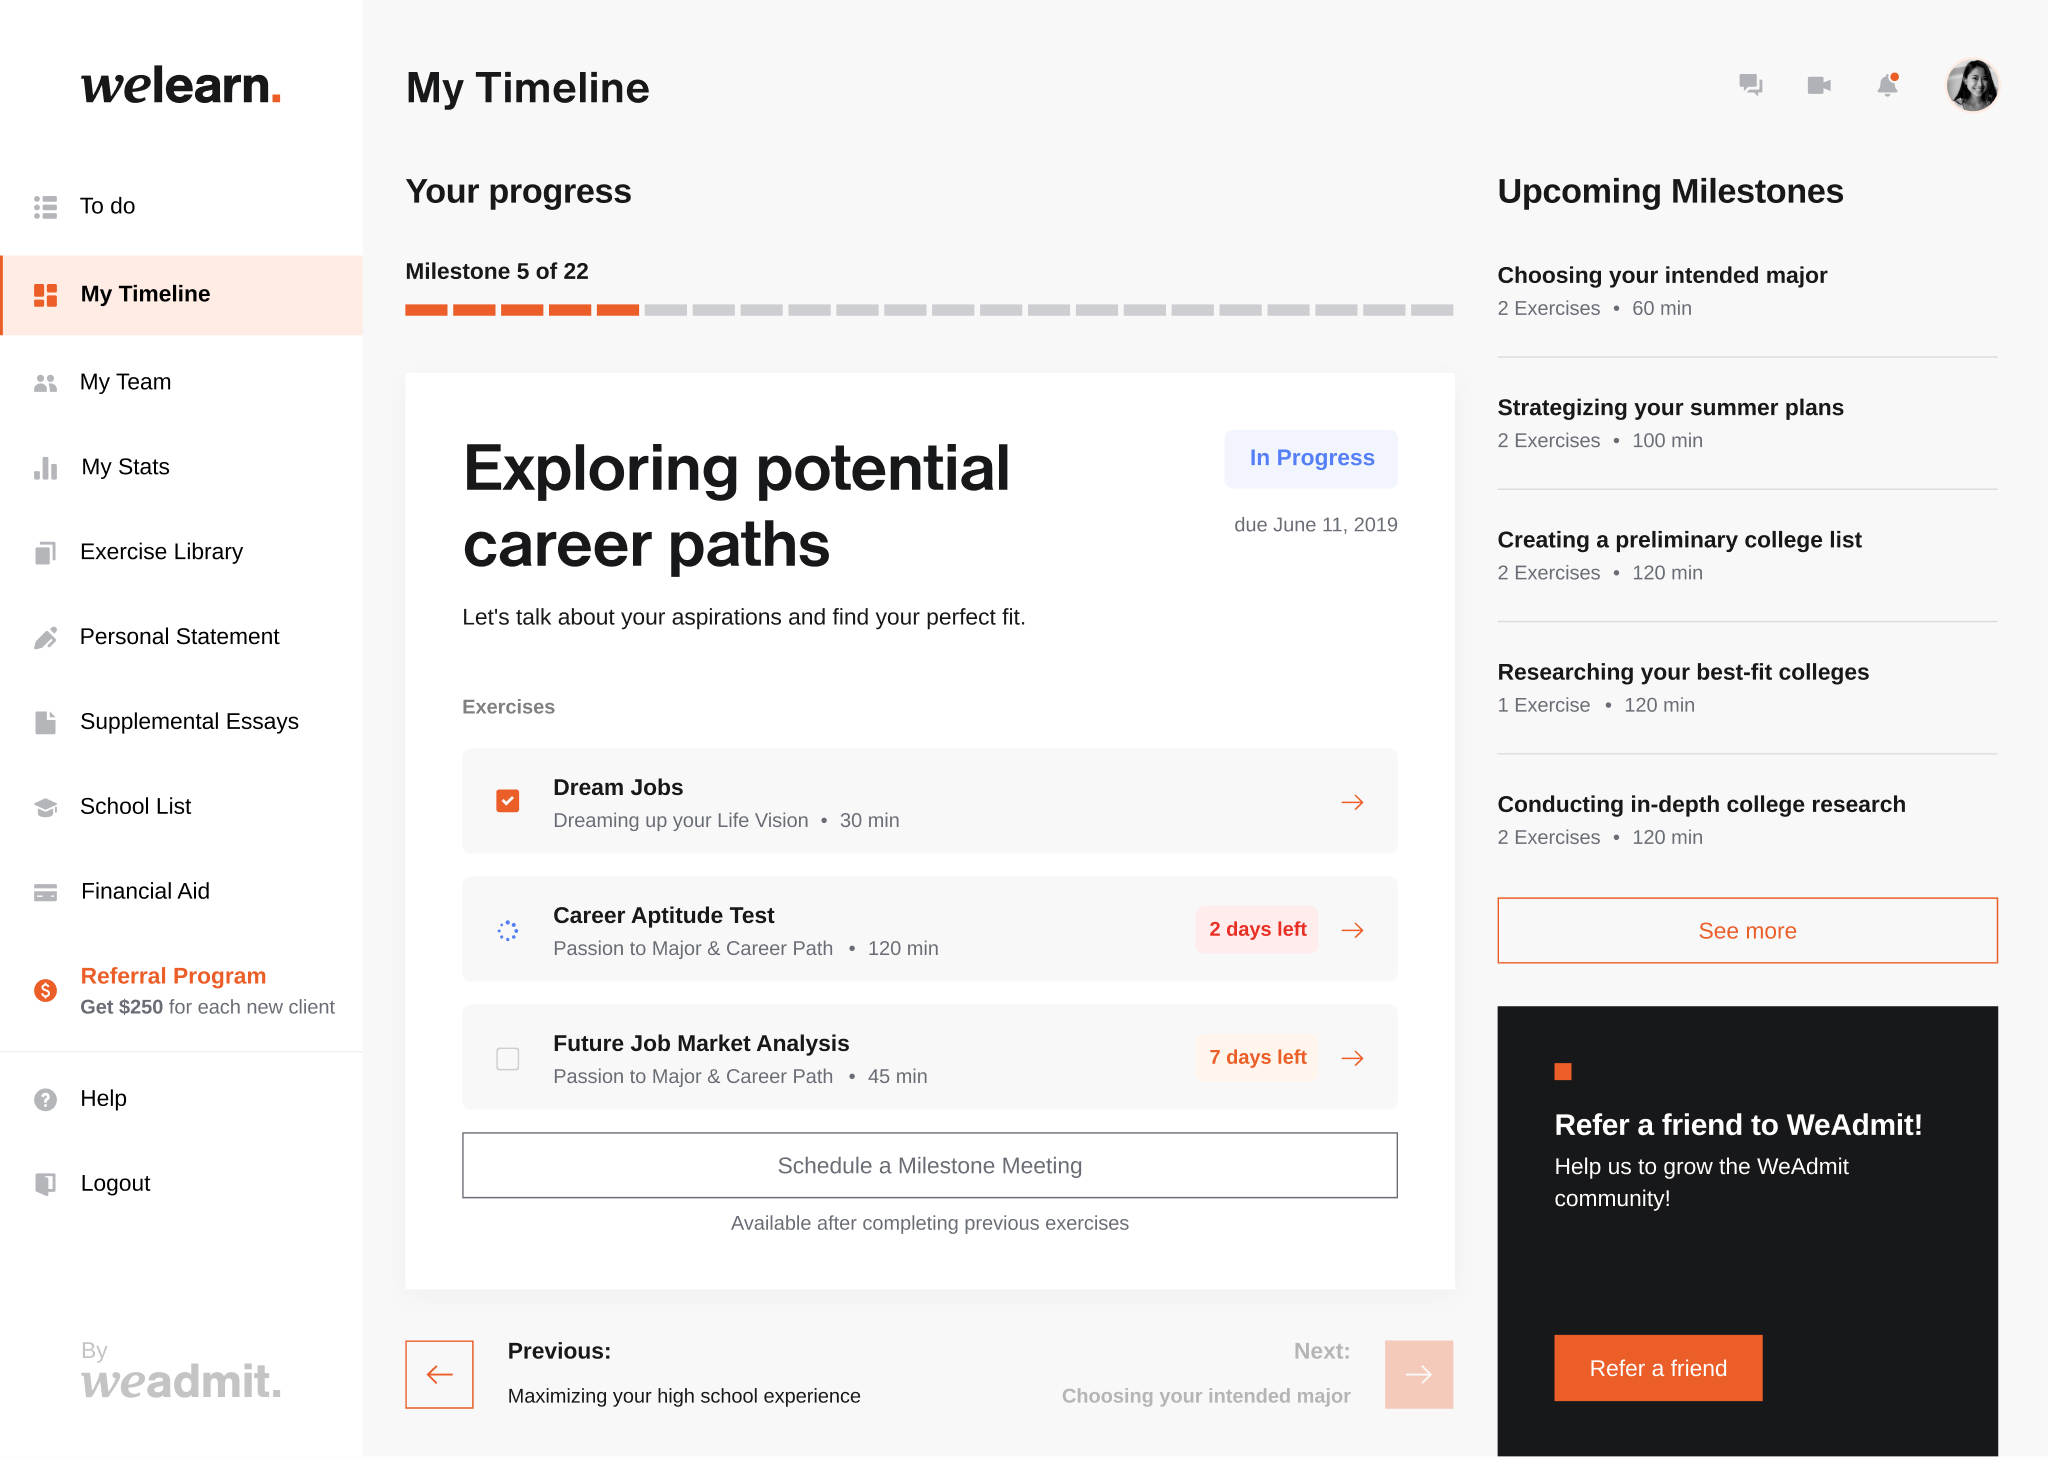 dashboard to potential career paths post college with exercises on choosing the right job after college